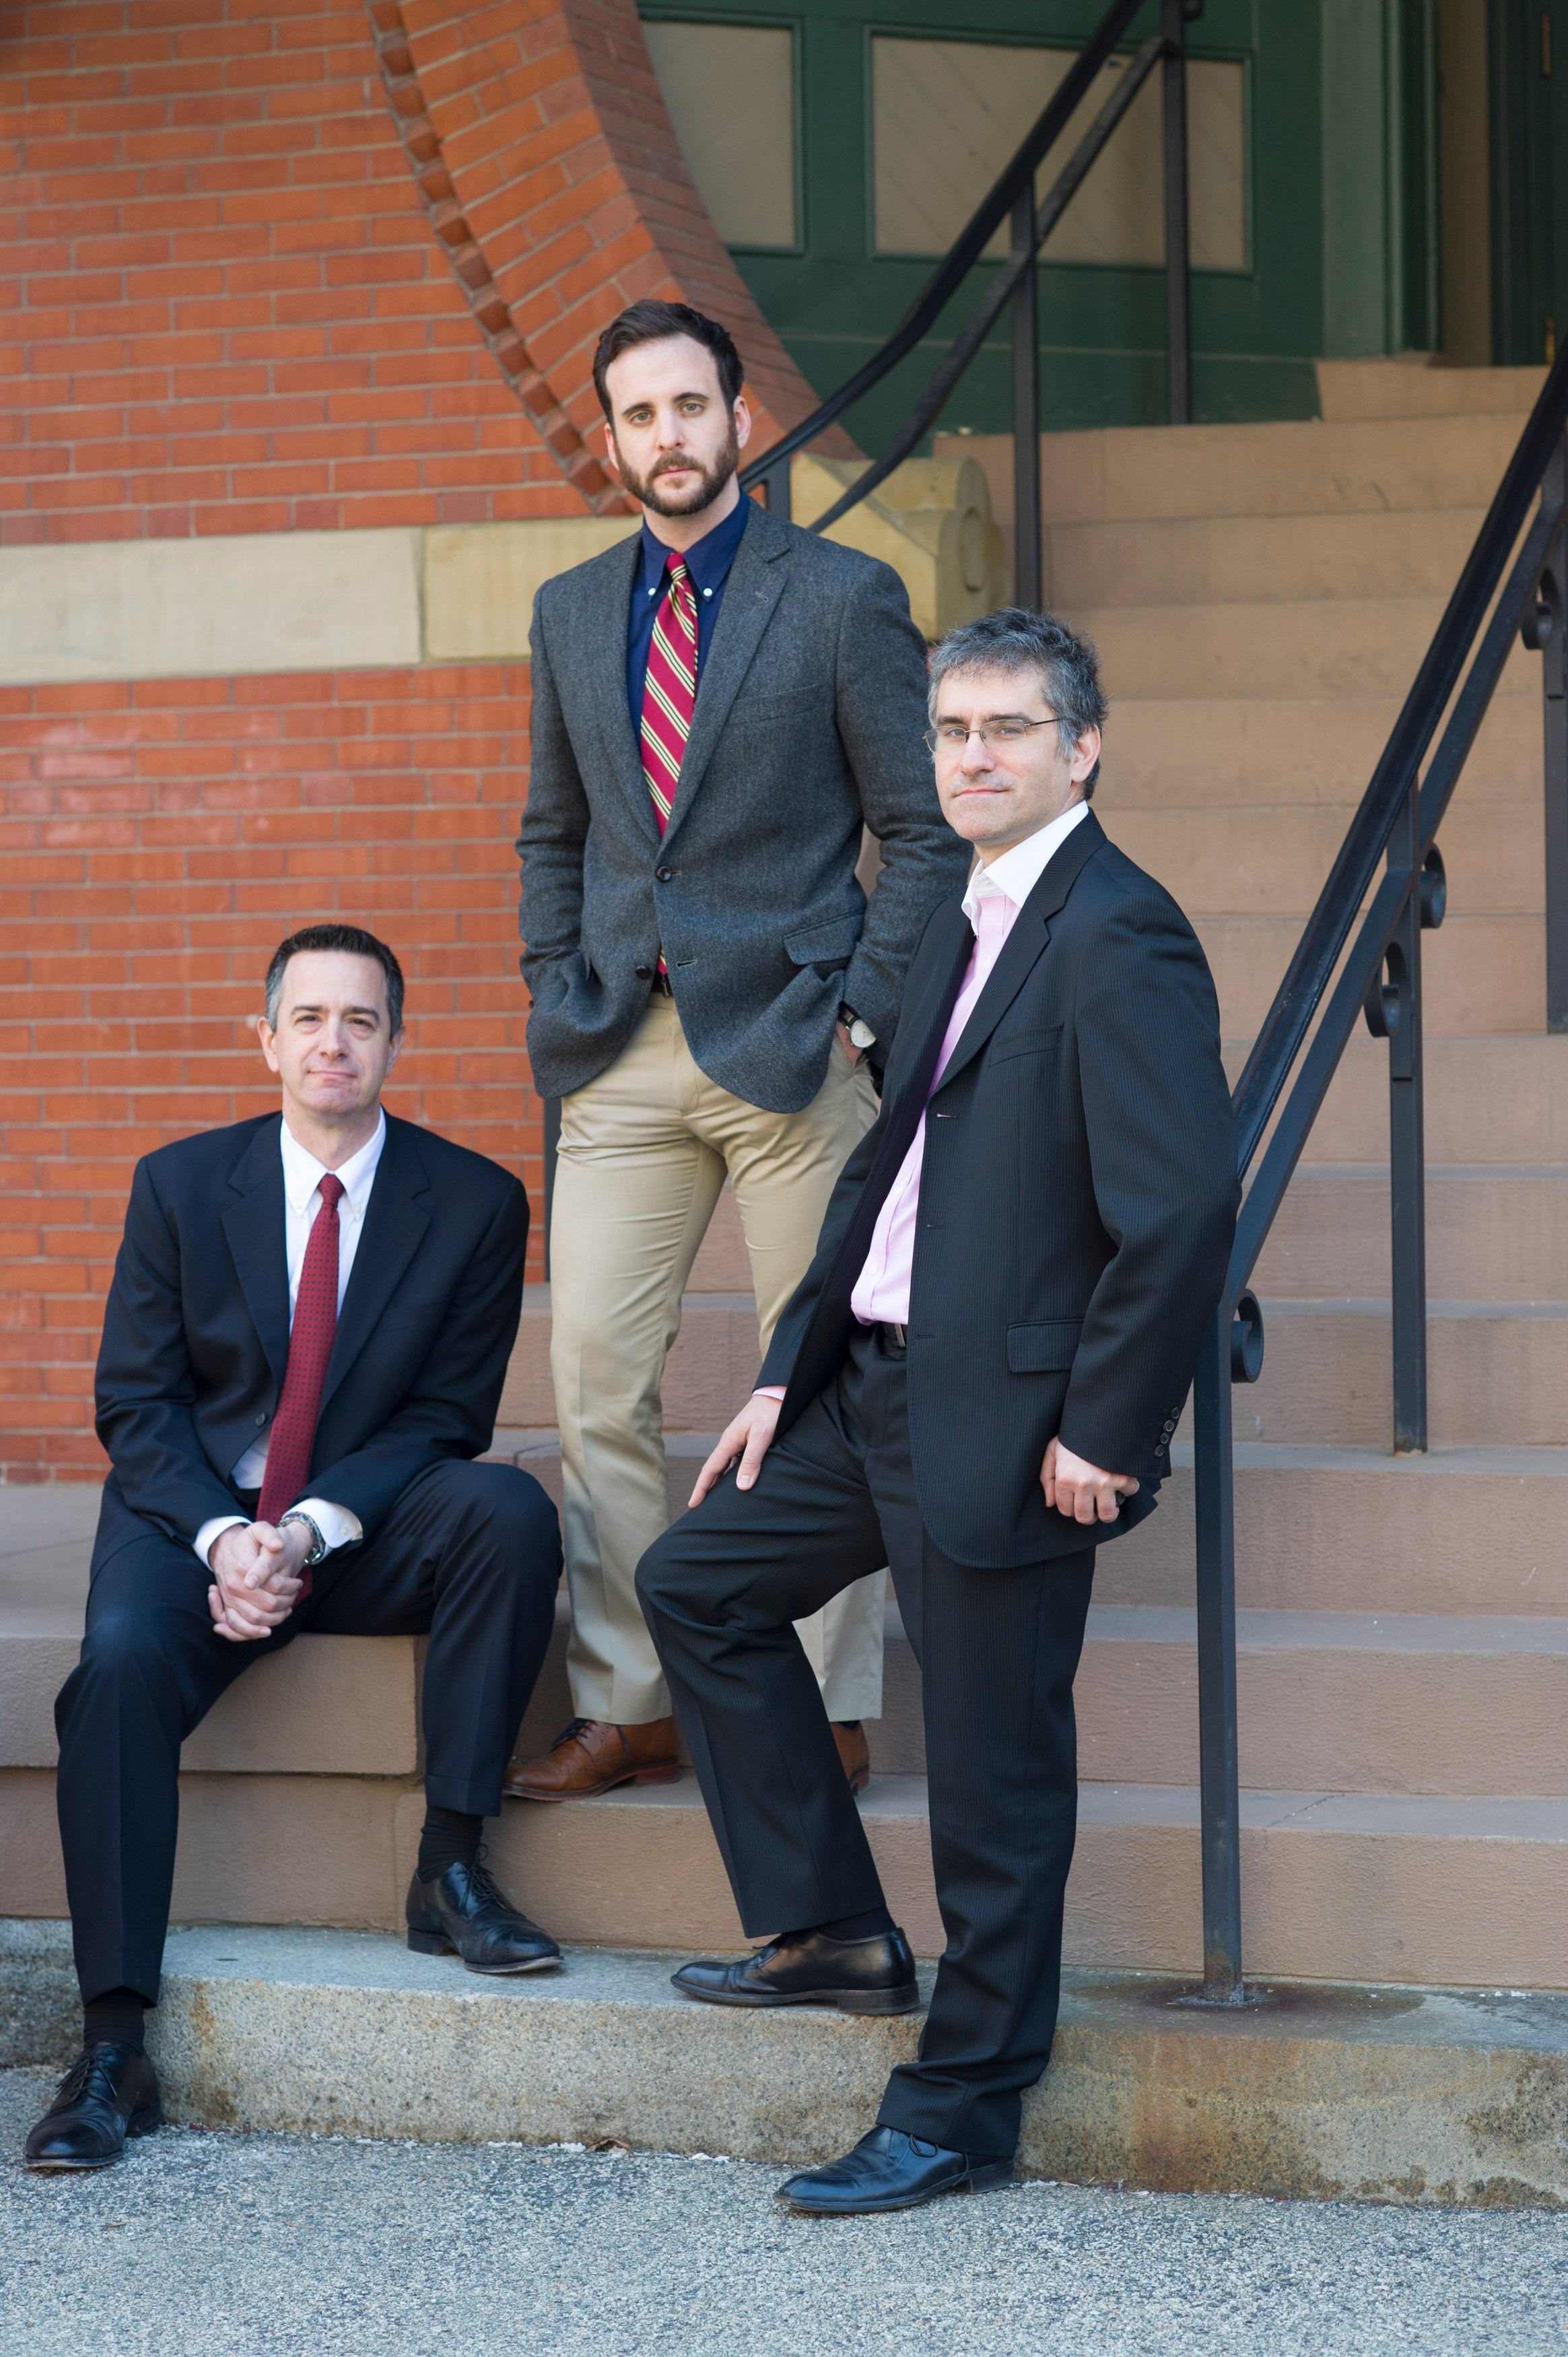 From left: Michael McClean, Philip Montenigro and Yorghos Tripodis, all of Boston University, who are among those studying the relationship between contact sports and the risk of memory or mood problems later in life, in Boston, March 27, 2016. Some scientists studying the relationship between contact sports and the risk of memory problems, including the Boston University group, argue that exposure to hits that snap the head — not concussions — is the most important factor. (Gretchen Ertl/The New York Times)